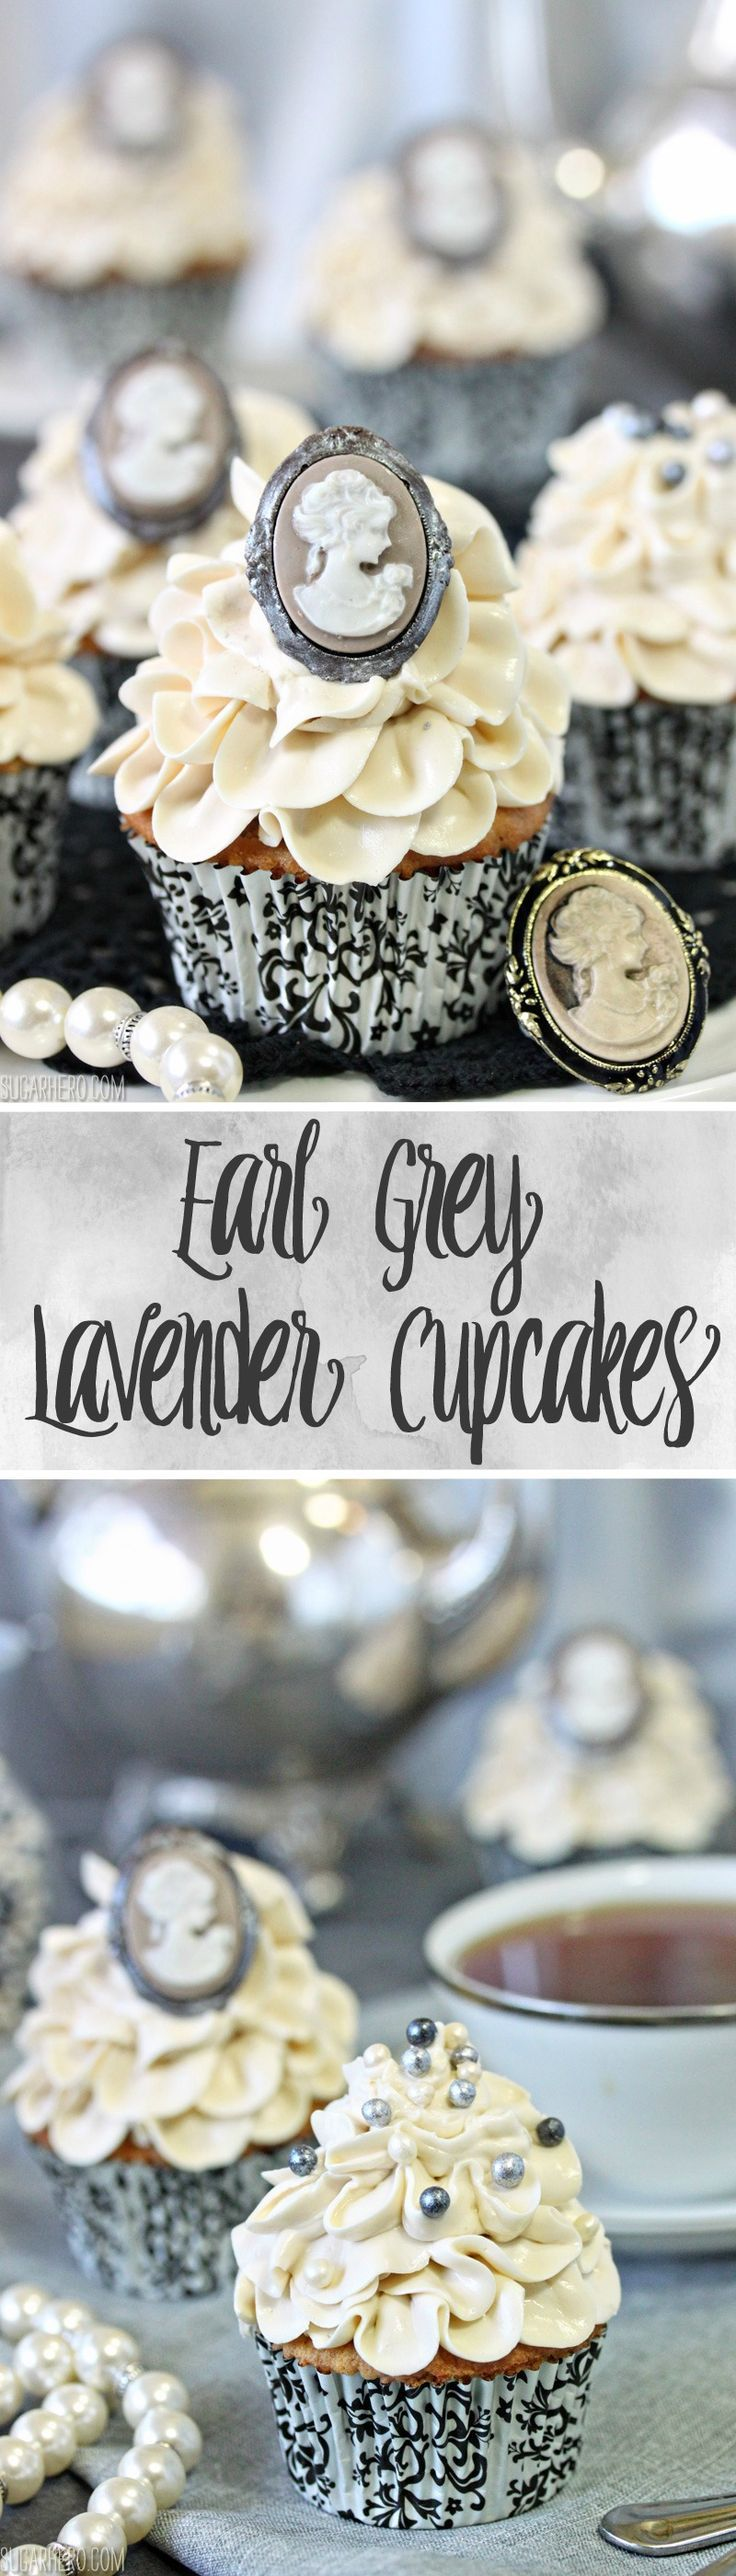 Earl Grey Lavender Cupcakes - with Earl Grey tea and lavender flavor in the cupcake batter and frosting! | From : http://www.sugarhero.com/earl-grey-lavender-cupcakes/